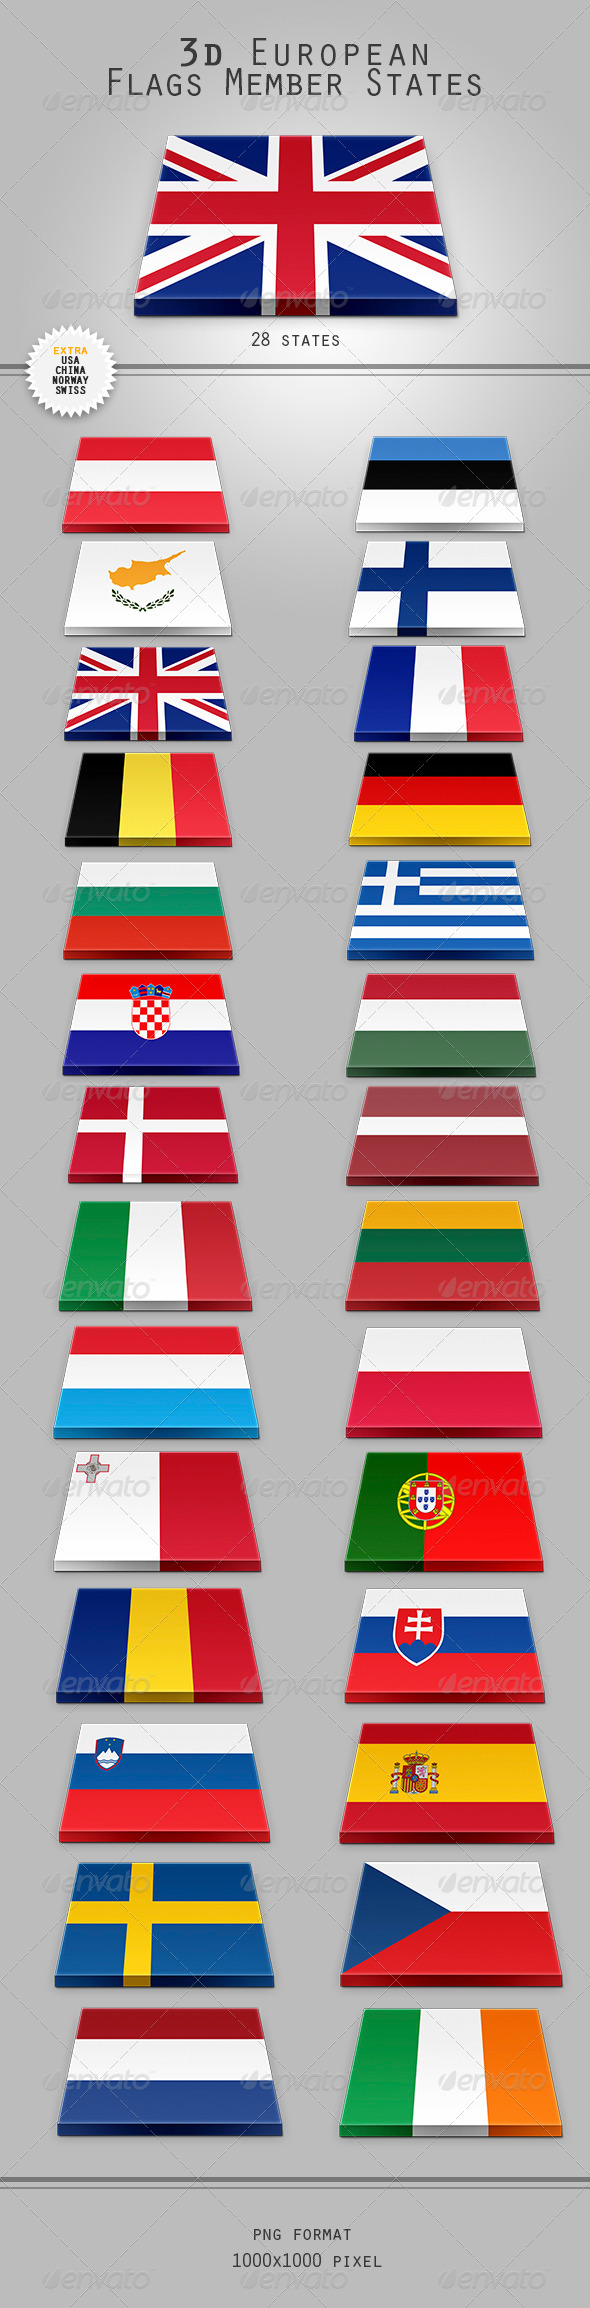 GraphicRiver 3D European Flags Member States 7573675